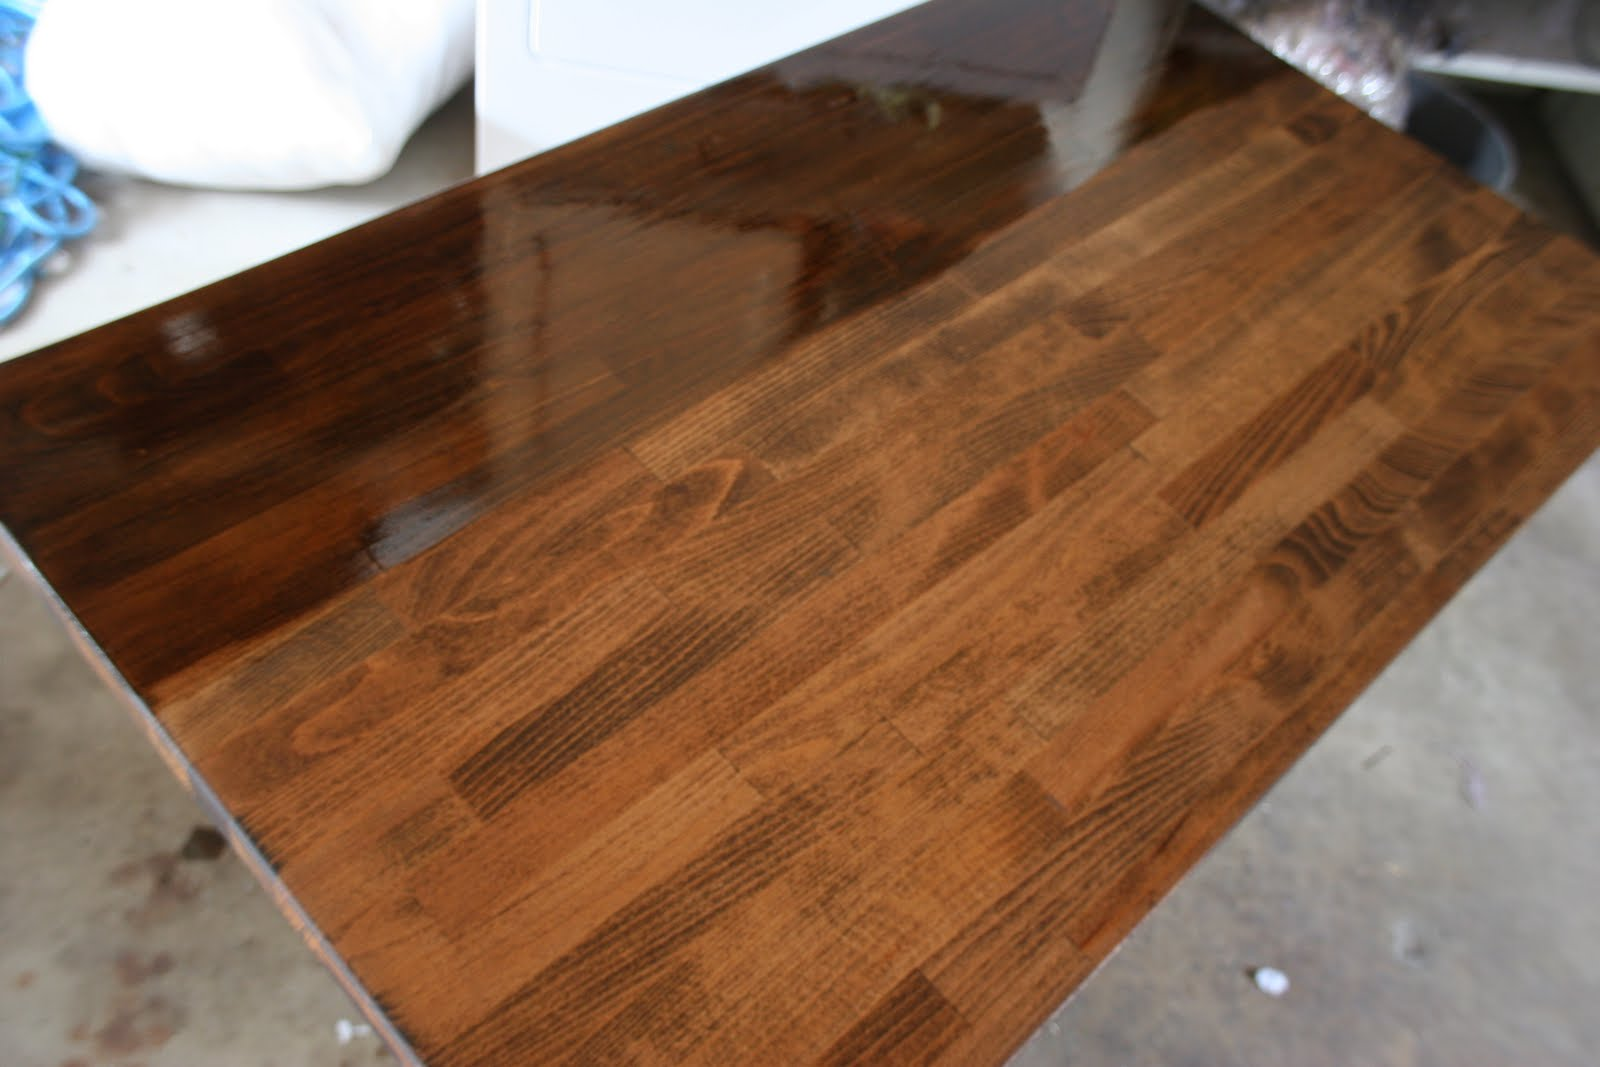 Rocky Bella: Butcher Block Counter